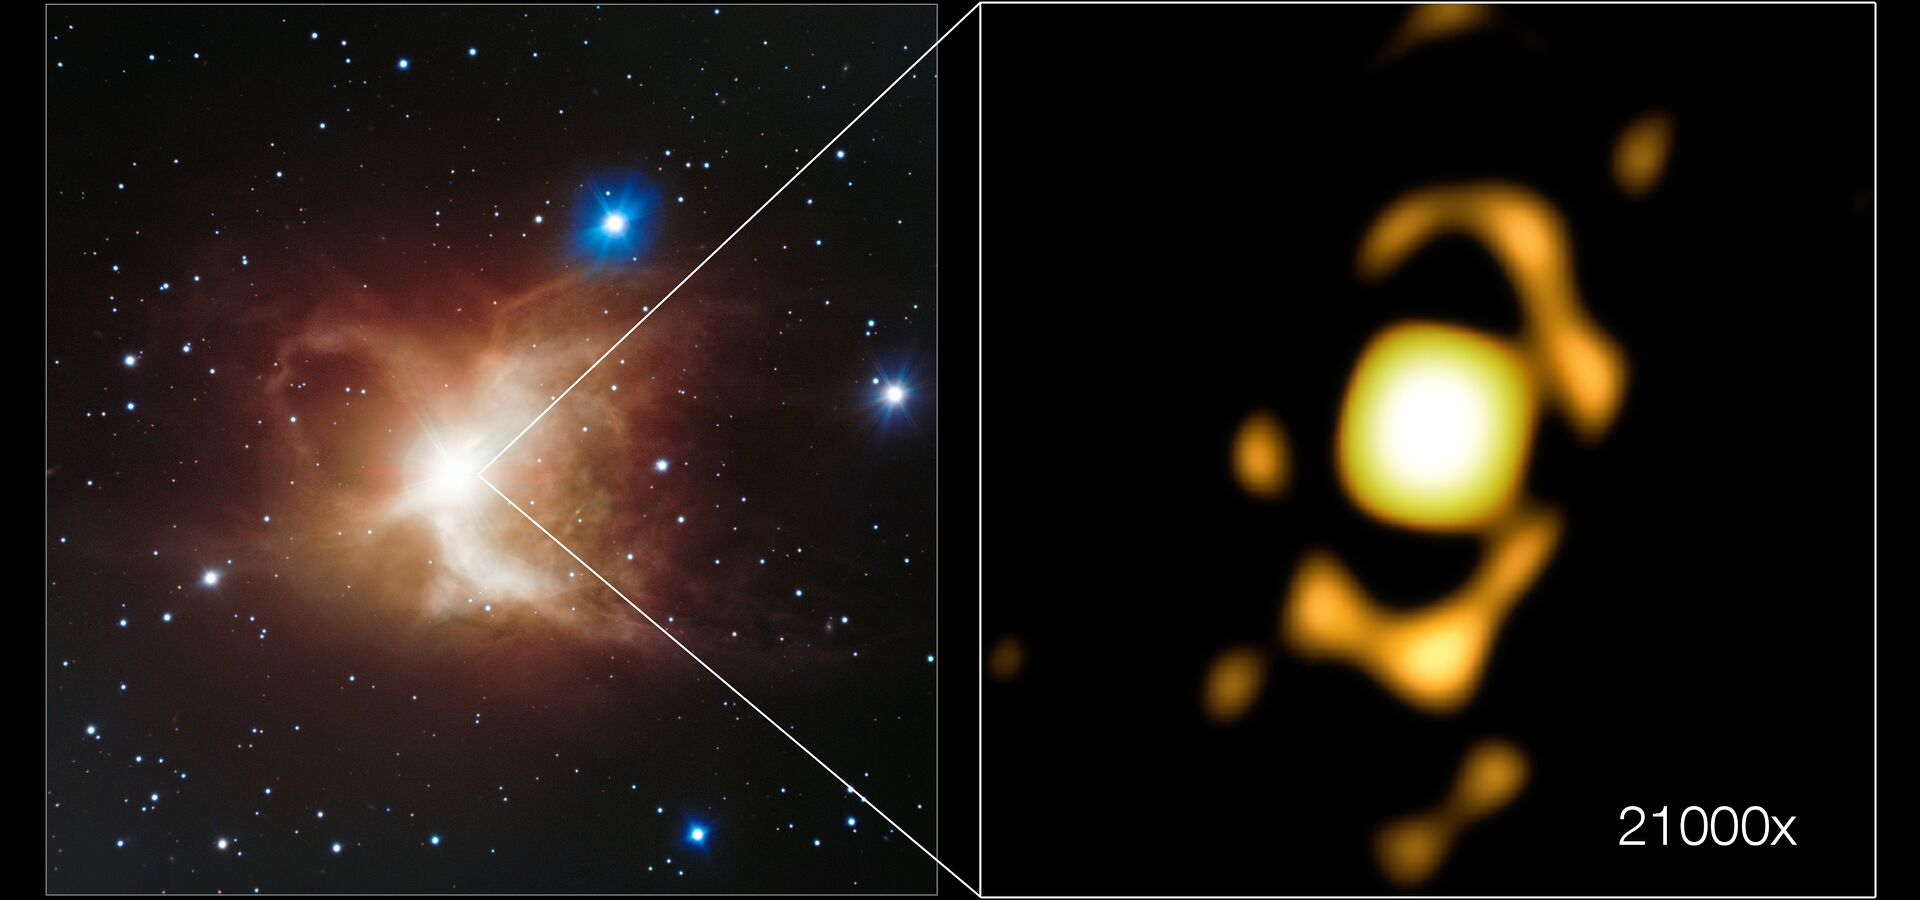 How zooming in on the Toby Jug Nebula 21 000 times provided insights into its formation